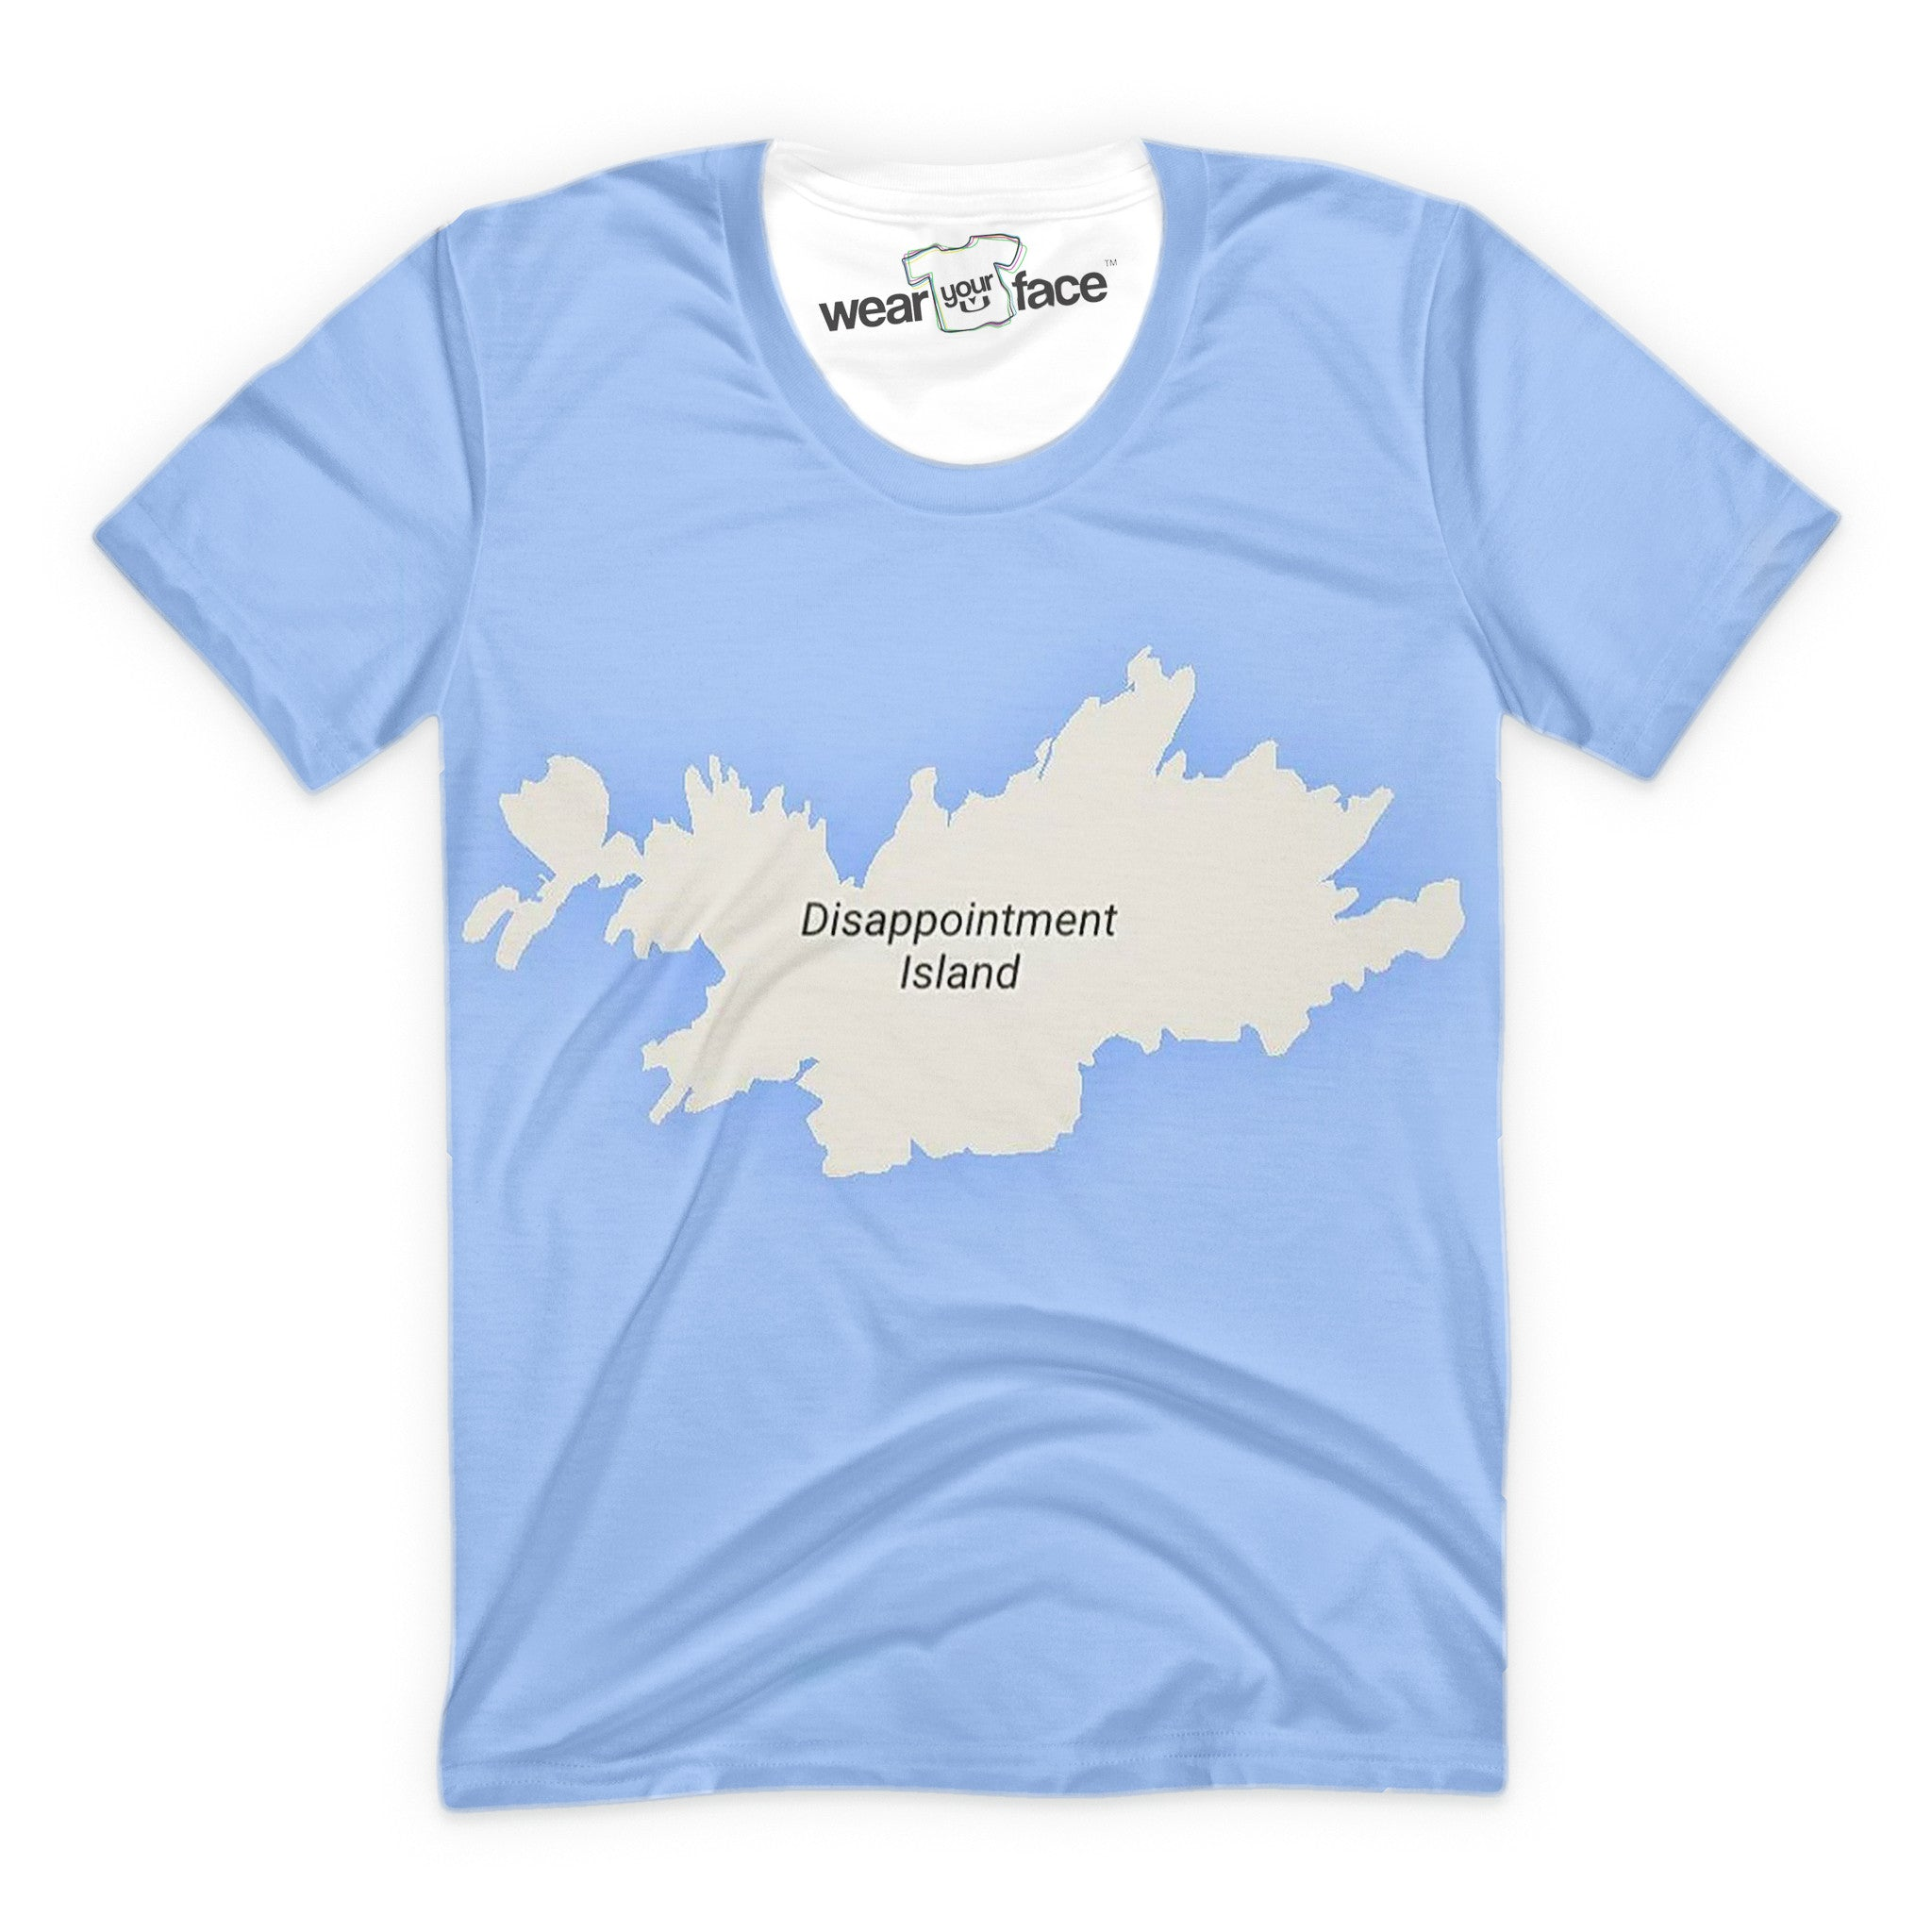 Disappointment Island T-Shirt